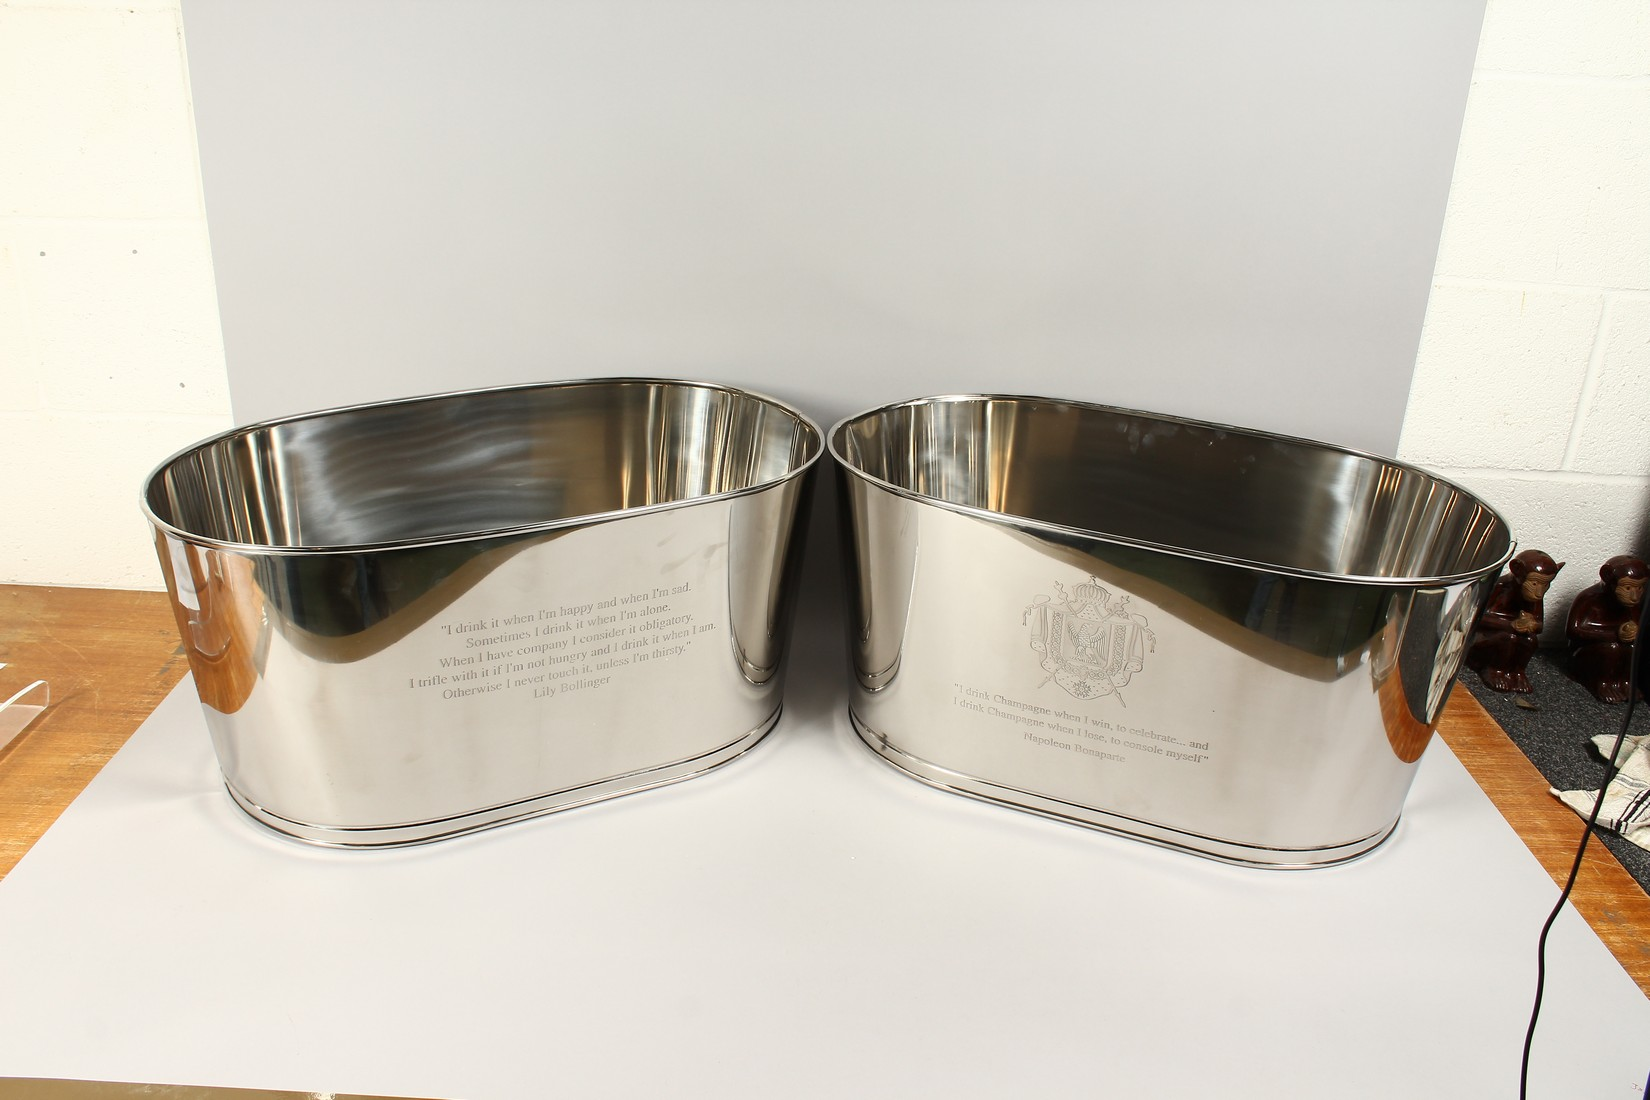 A PAIR OF LILY BOLLINGER COOLERS 24ins long - Image 4 of 4